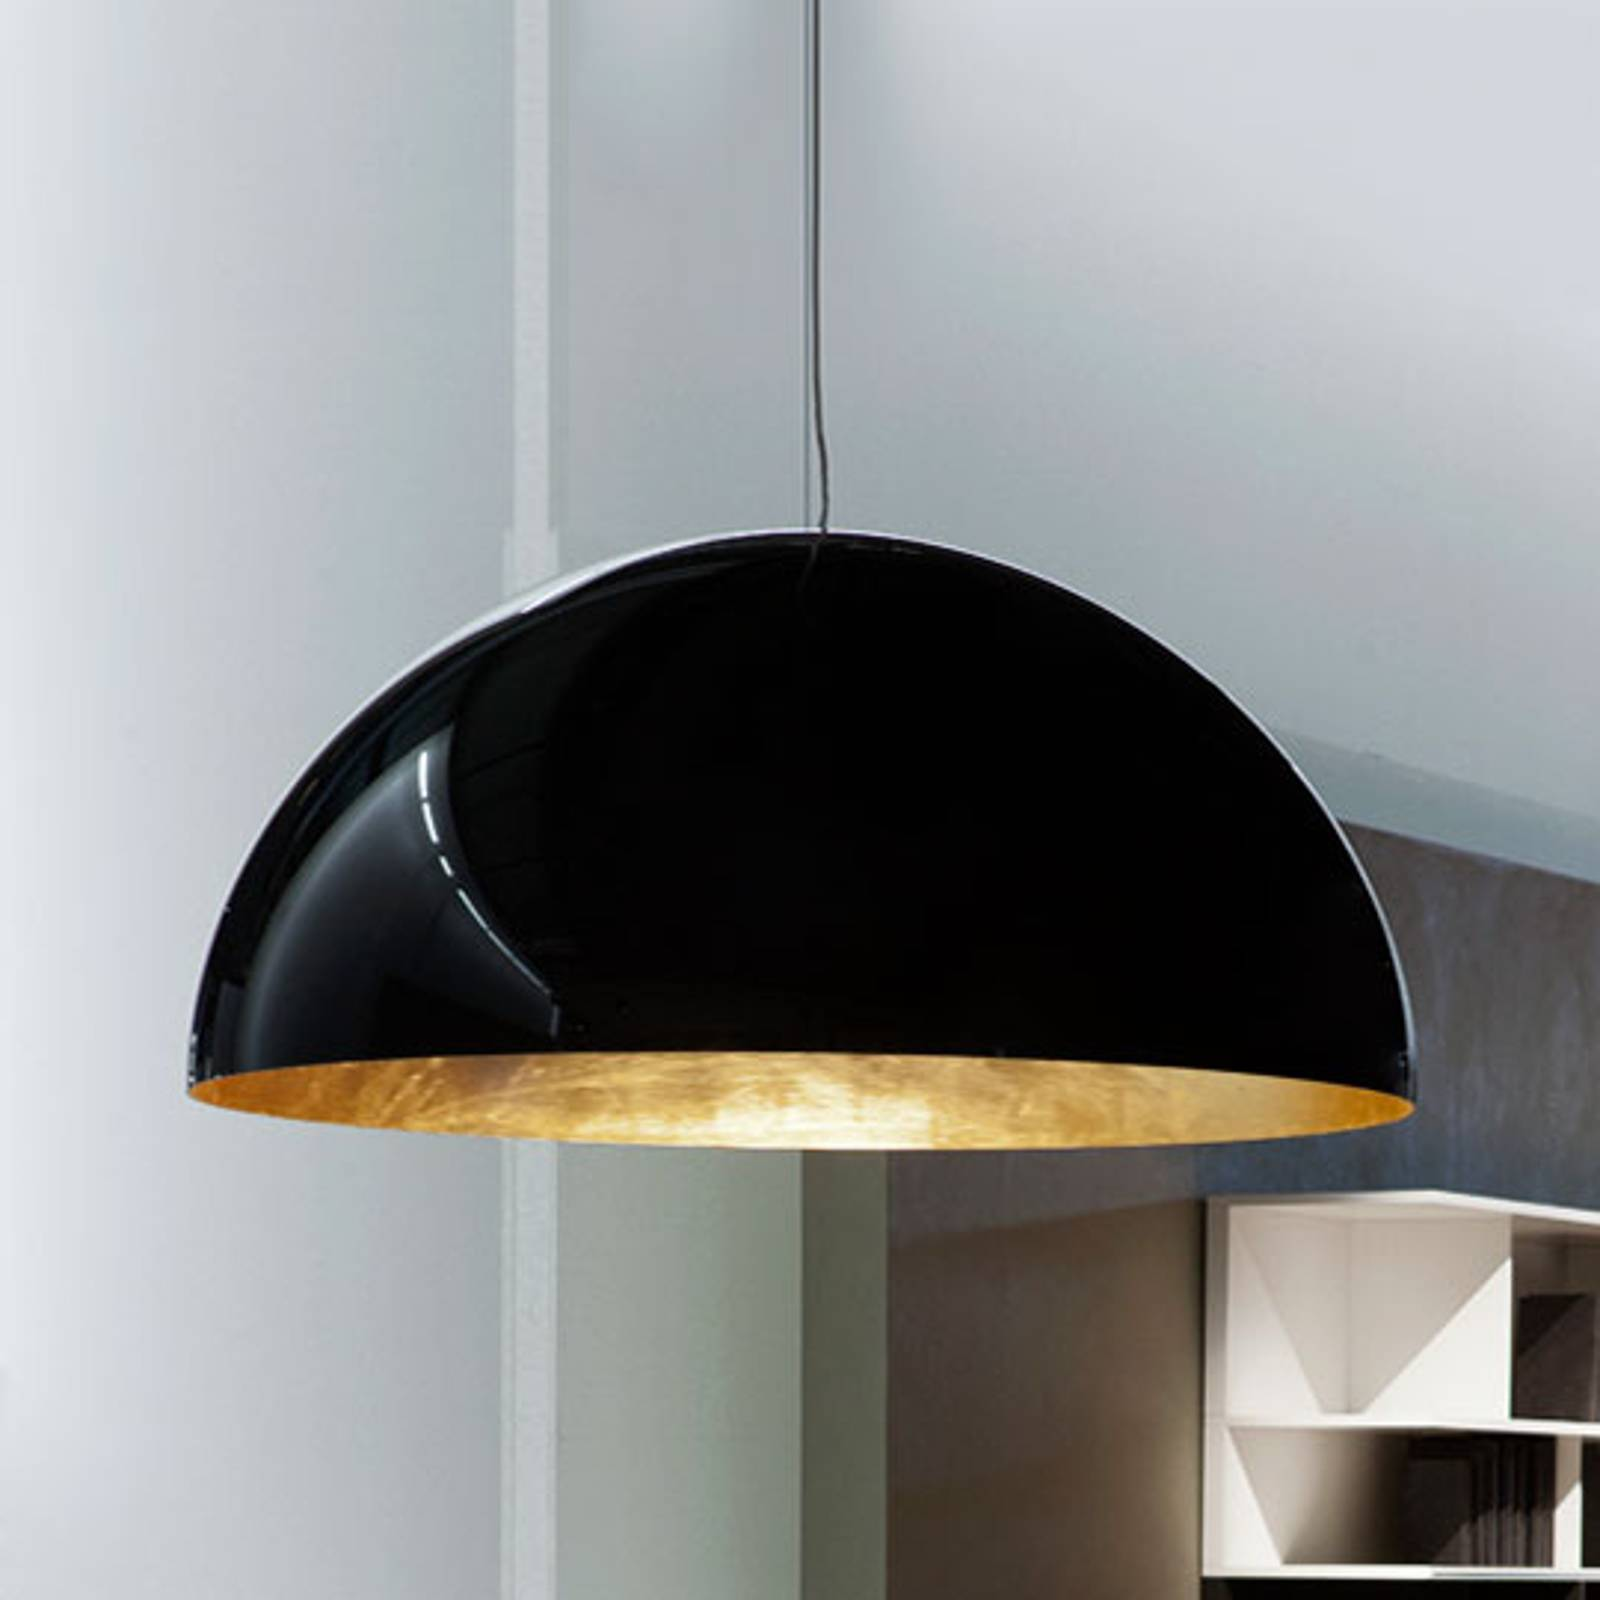 Semi-circular hanging light Sonora, black-gold from Oluce